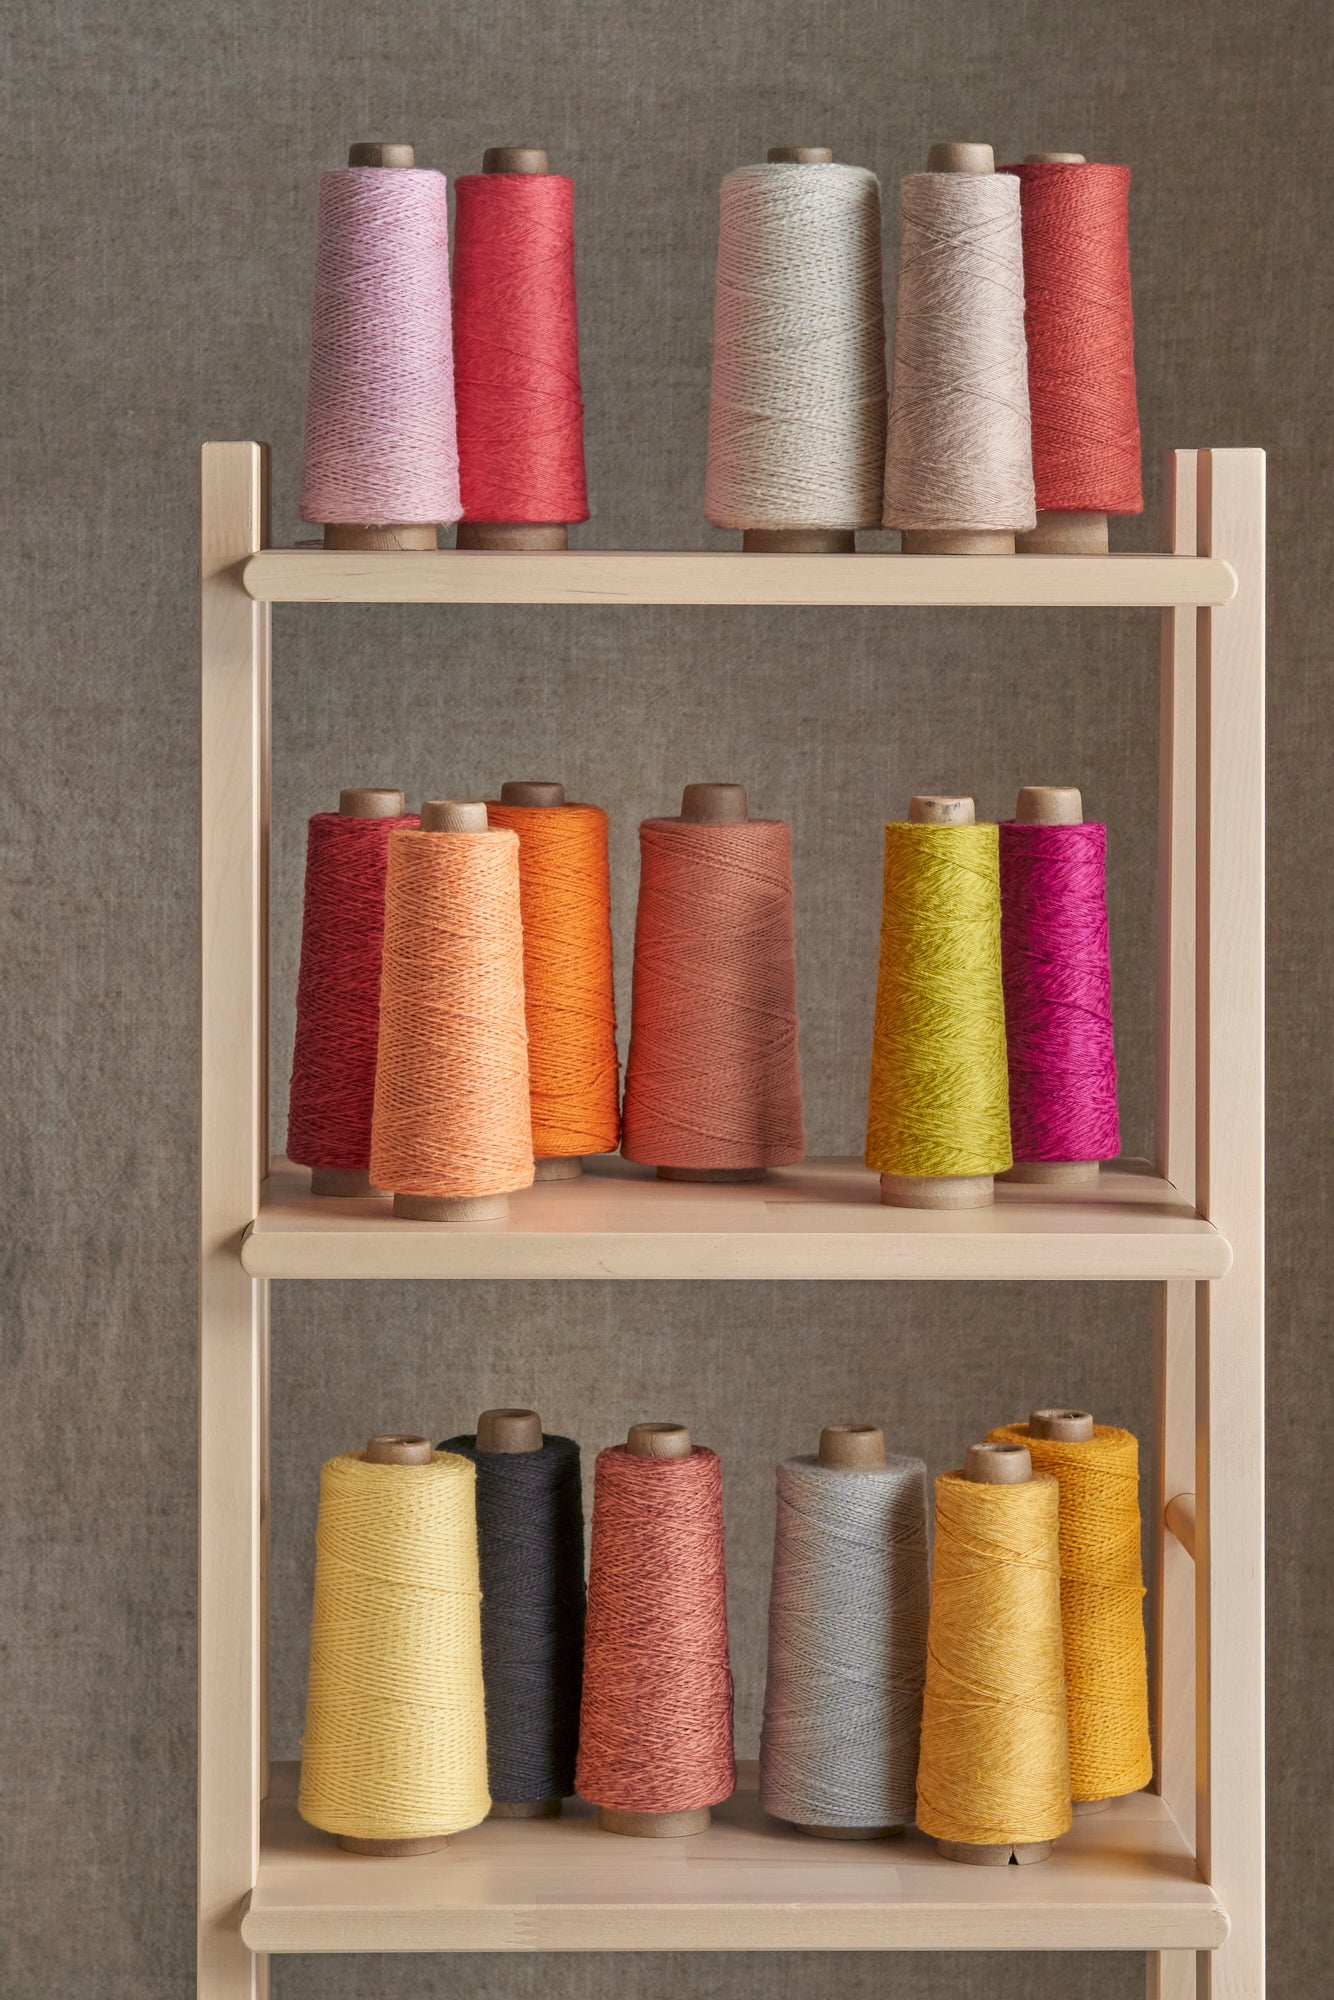 An array of warm toned rolls of threads set on a wooden shelf against a gray background.